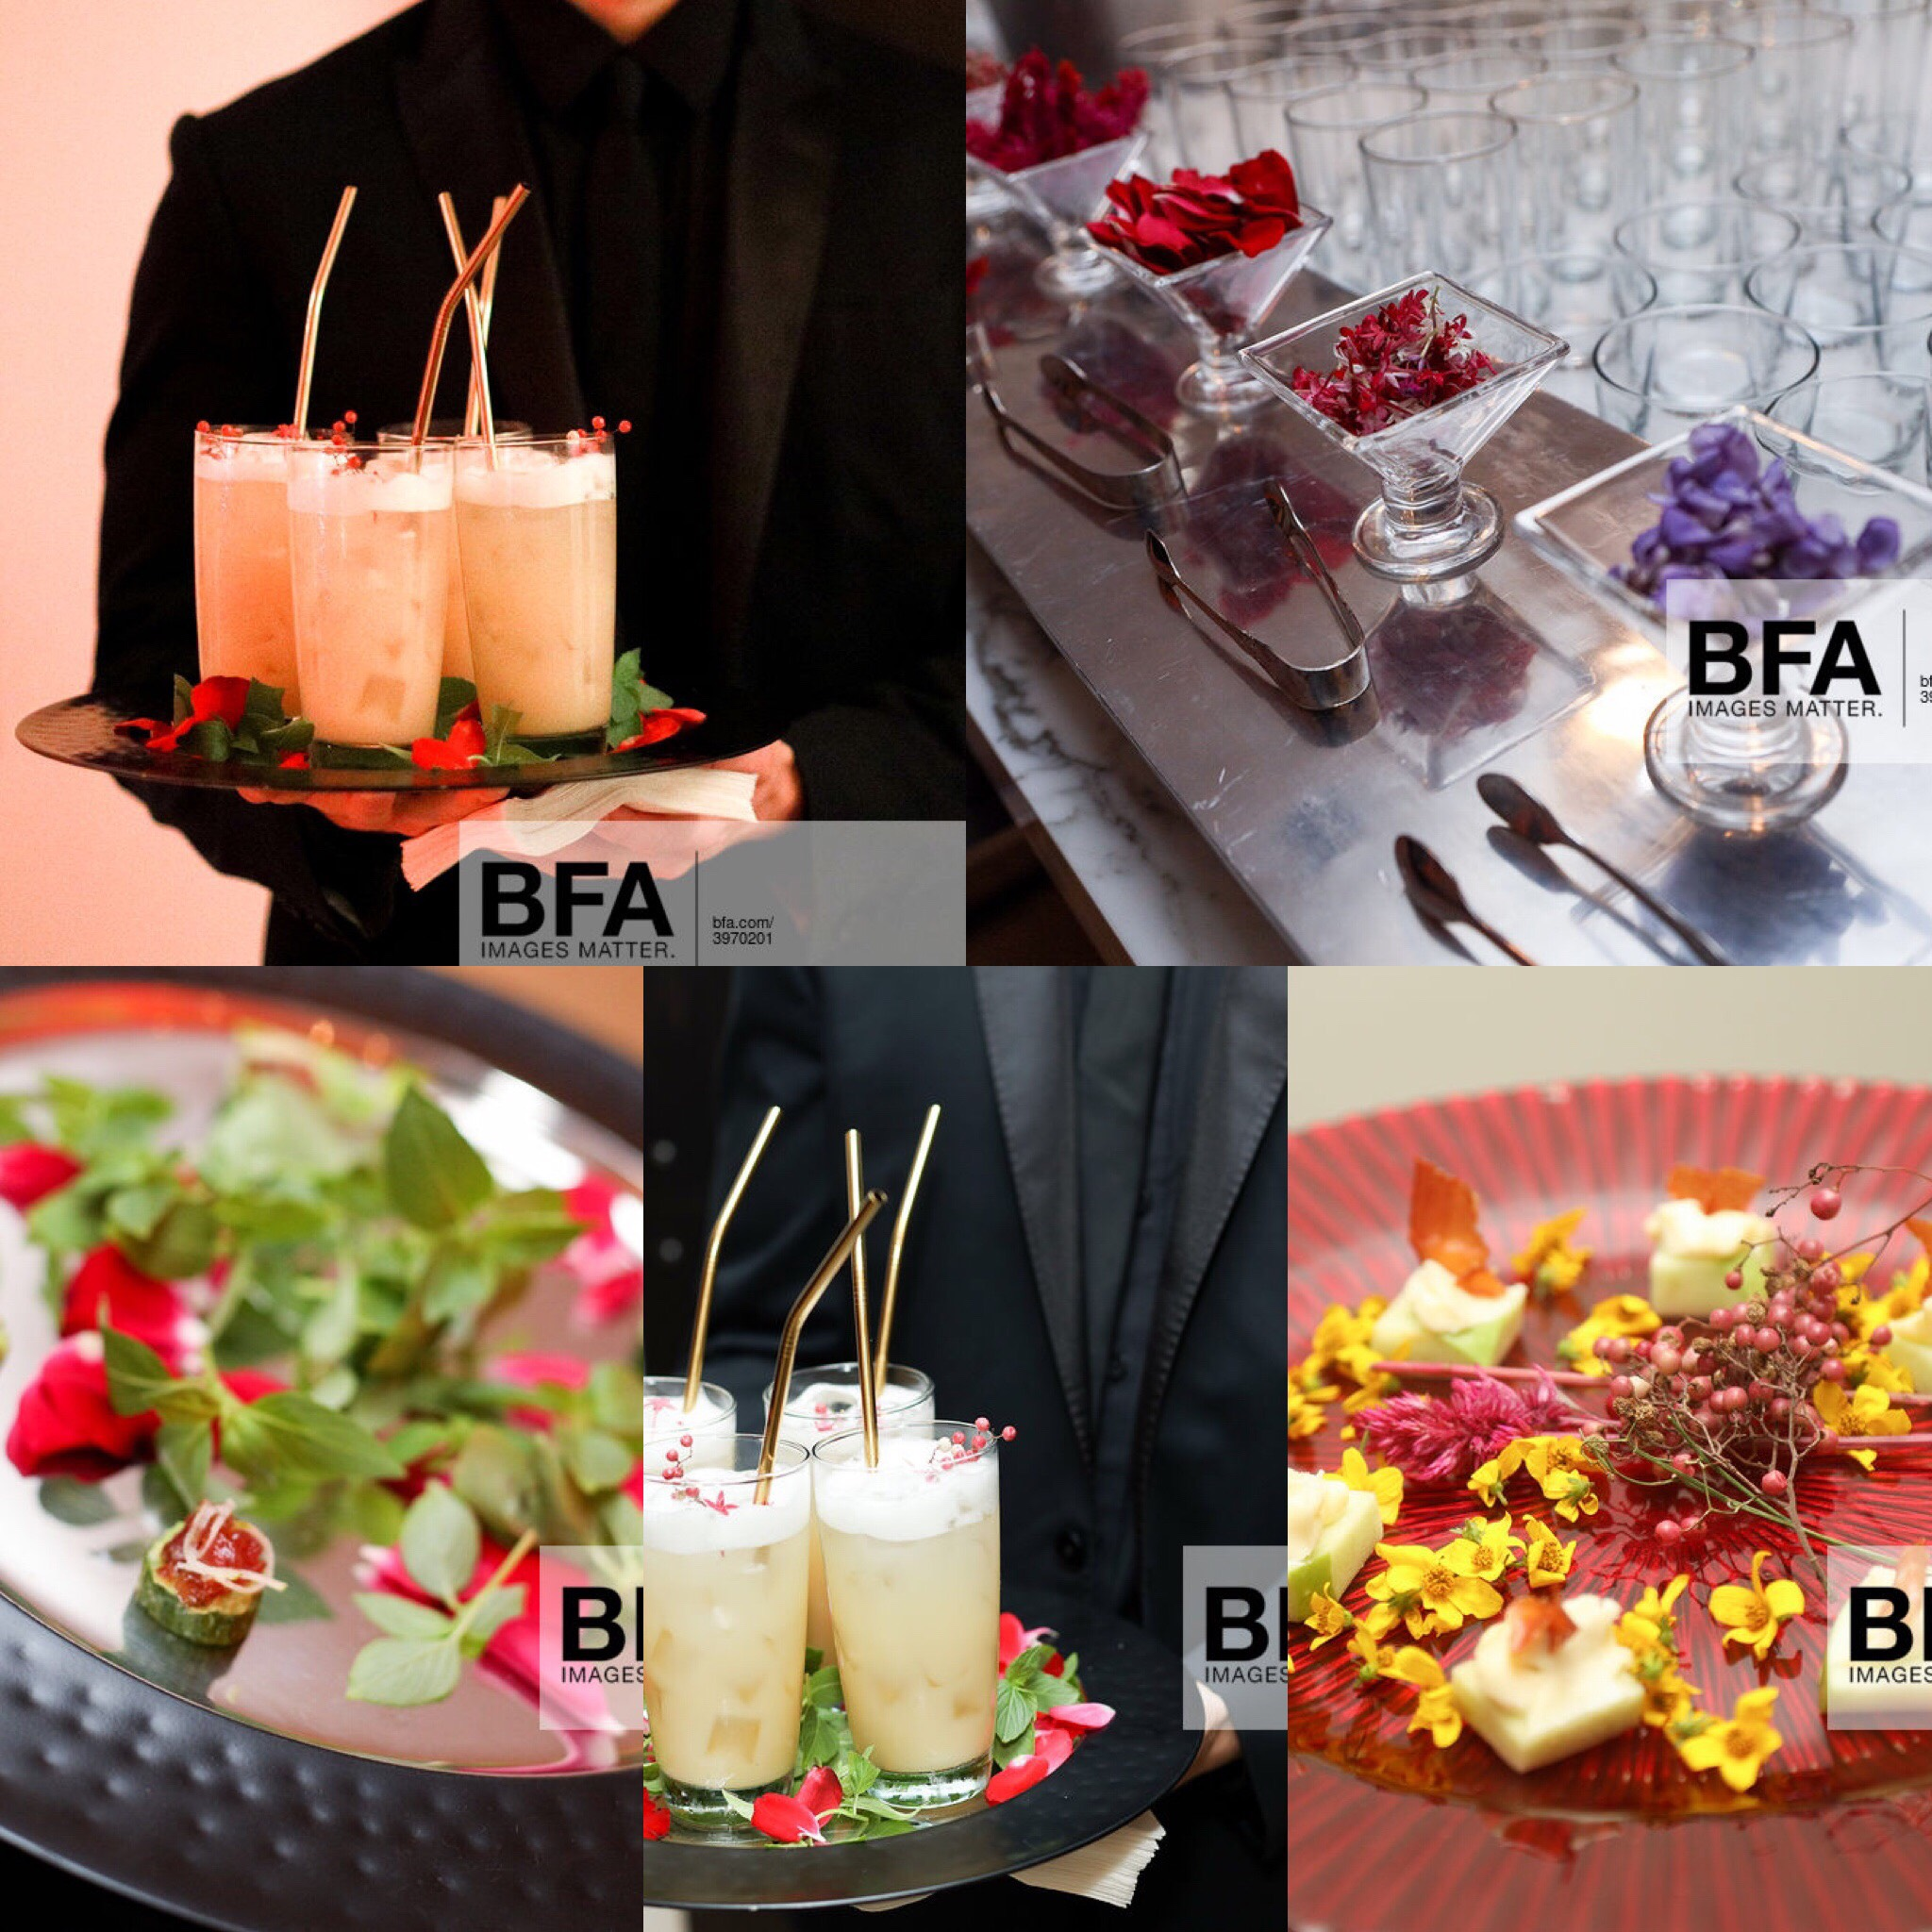 NY Catering Service:  Mixology and Canapés